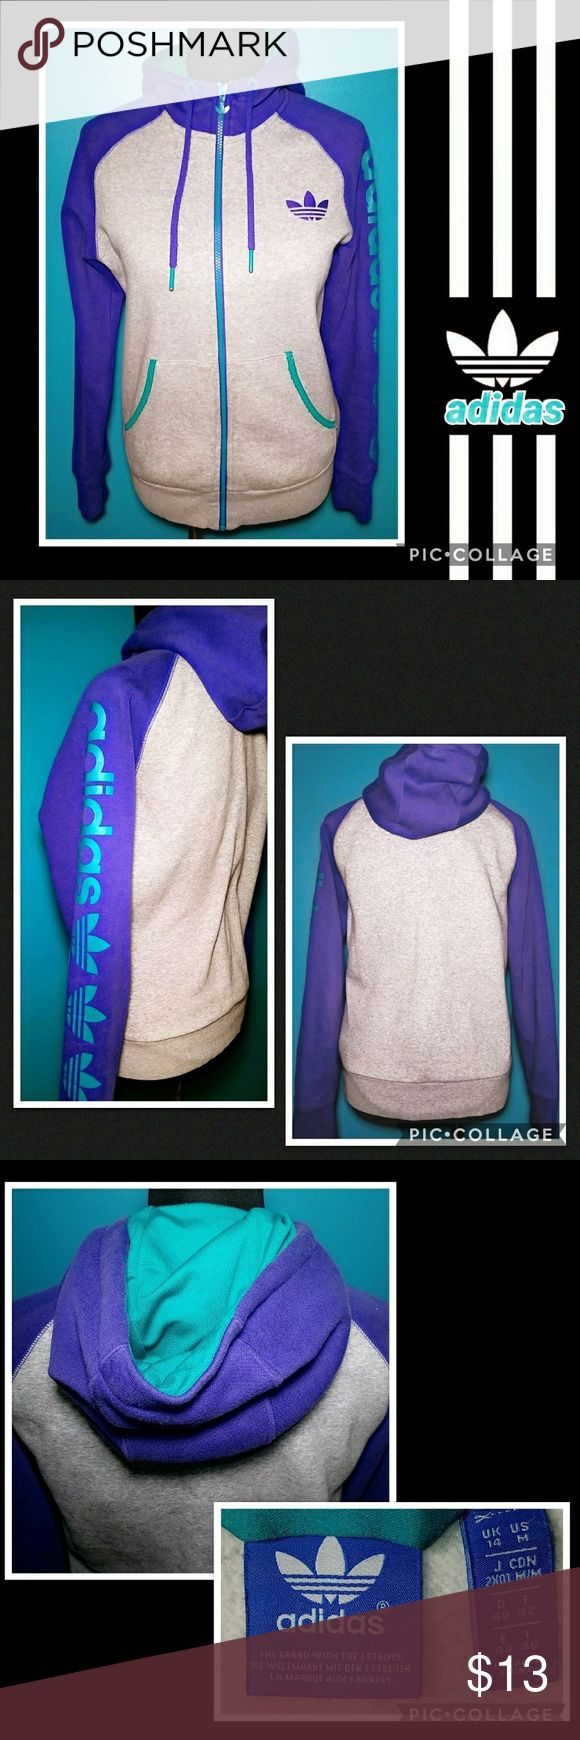 ADIDAS Zip up Hoodie Sweatshirt Shows slight wear~ GUC~ THE BLUE COLOR IS ACTUALLY PURPLE (I had trouble w/my camera showing it's true color) other colors (teal & gray) are true to color in photo~ adidas Tops Sweatshirts & Hoodies